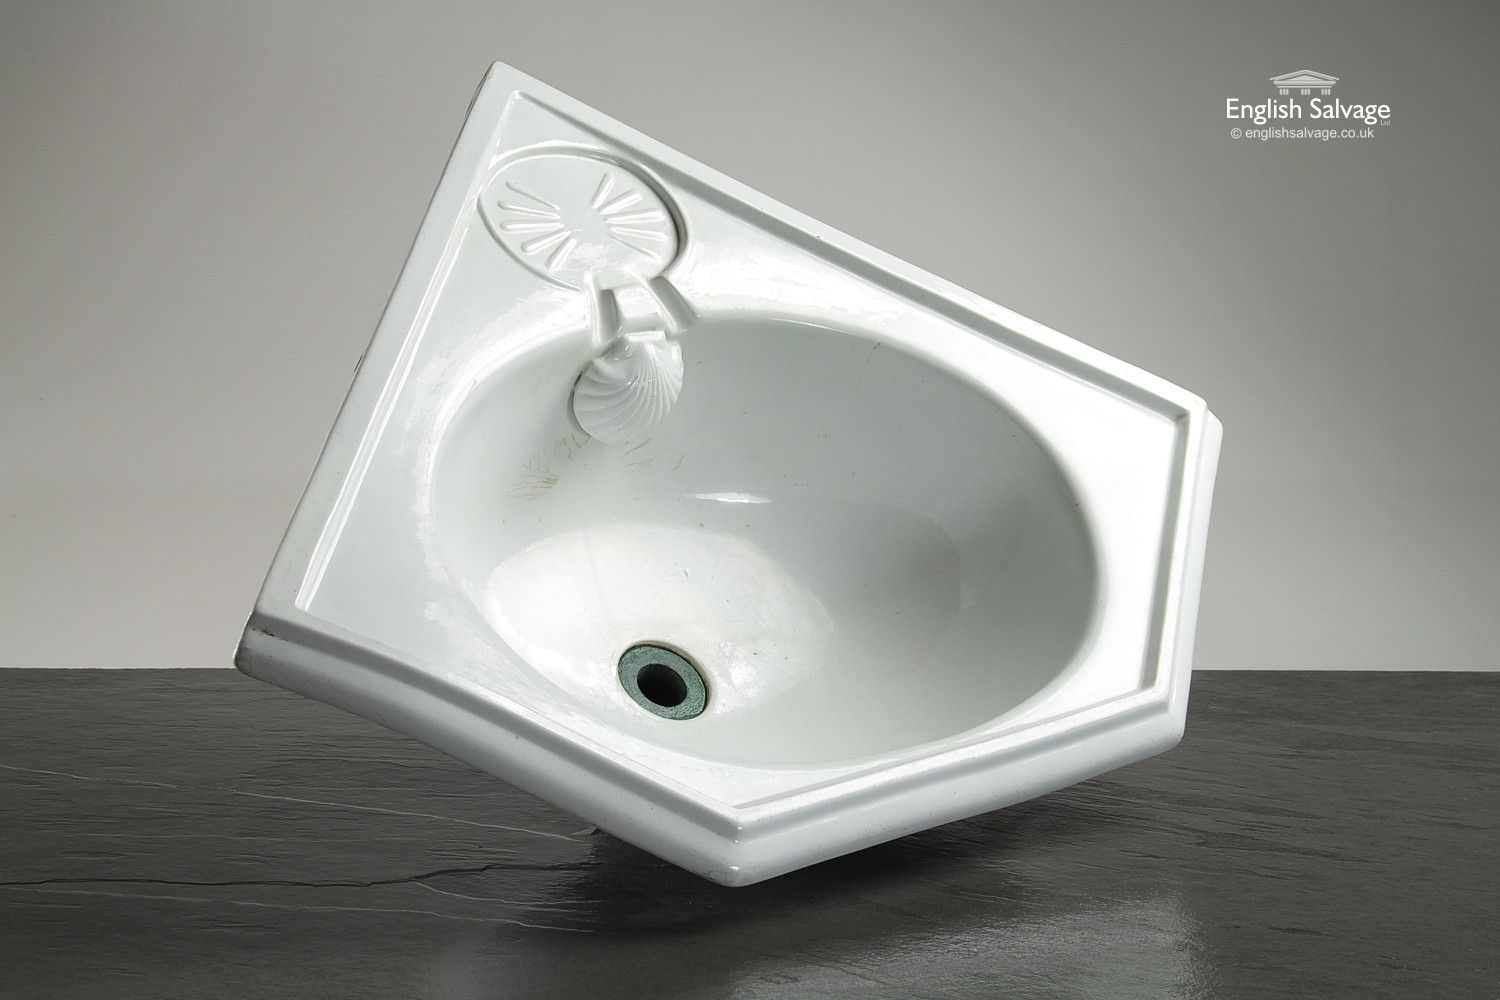 Shanks sink and stand reclaimed porcelain sinks and chrome stands - Victorian Corner Basin With Shell Overflow